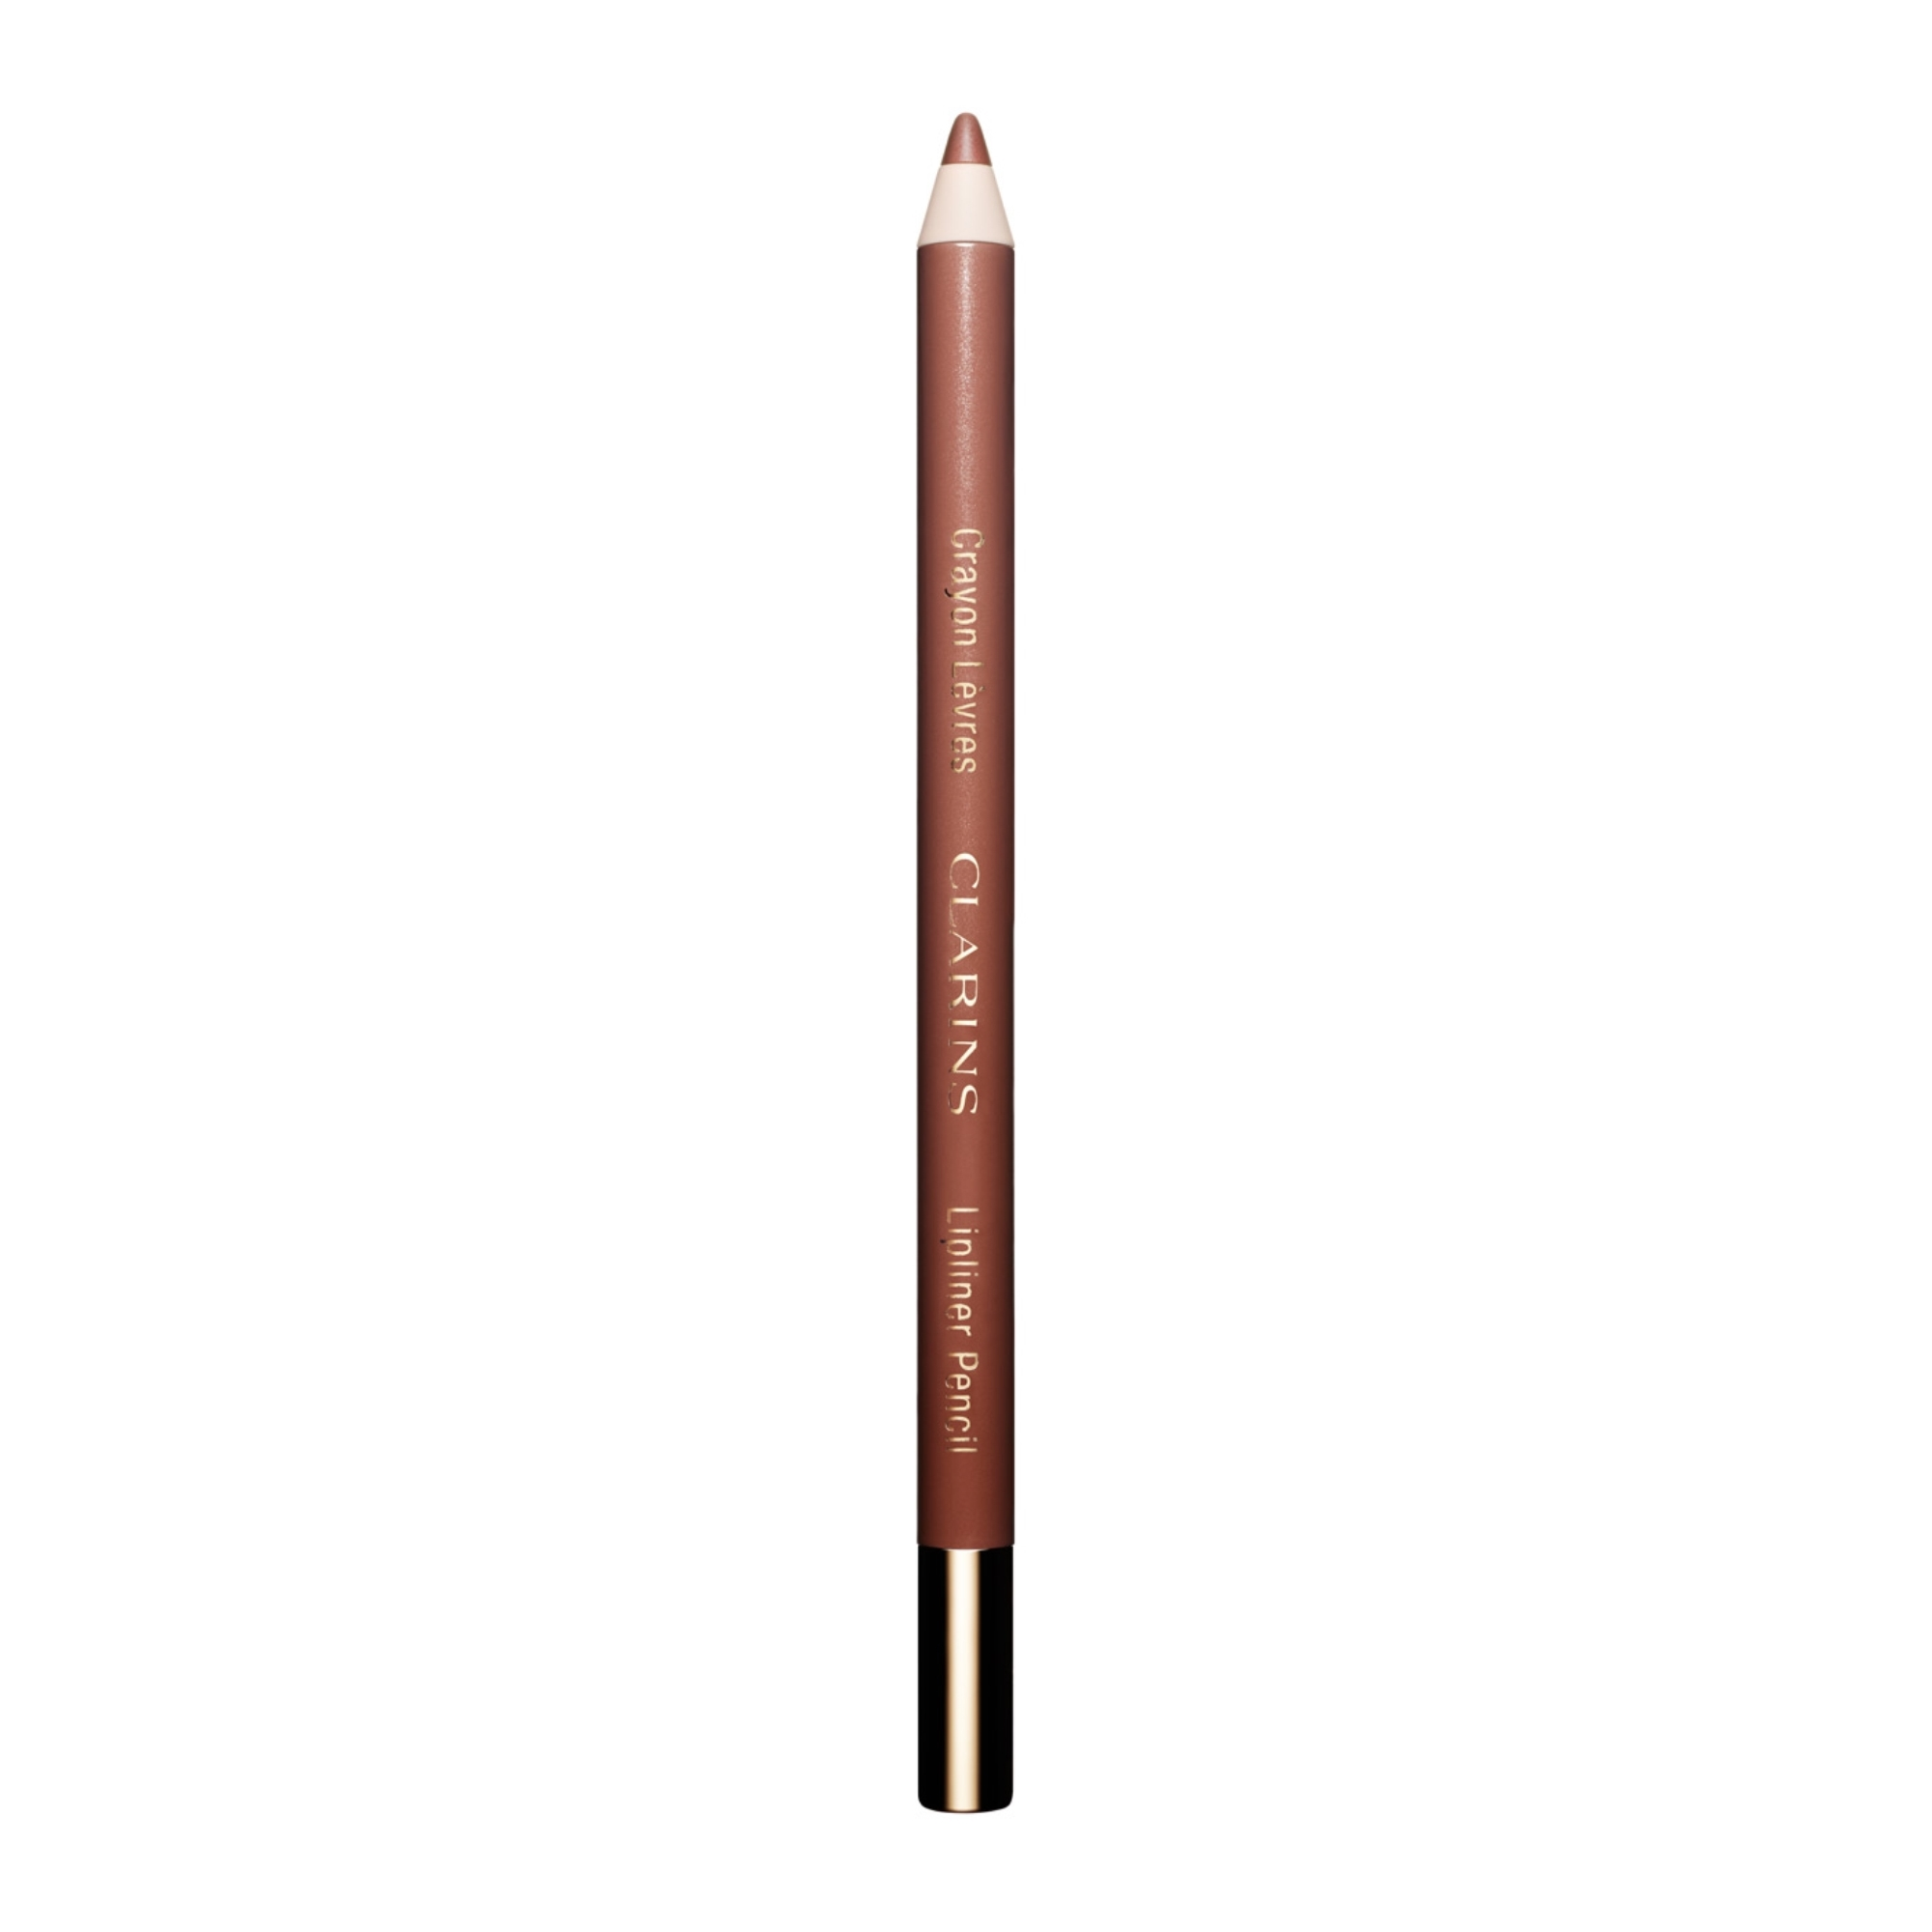 Lipliner Pencil 02 Nude Beige